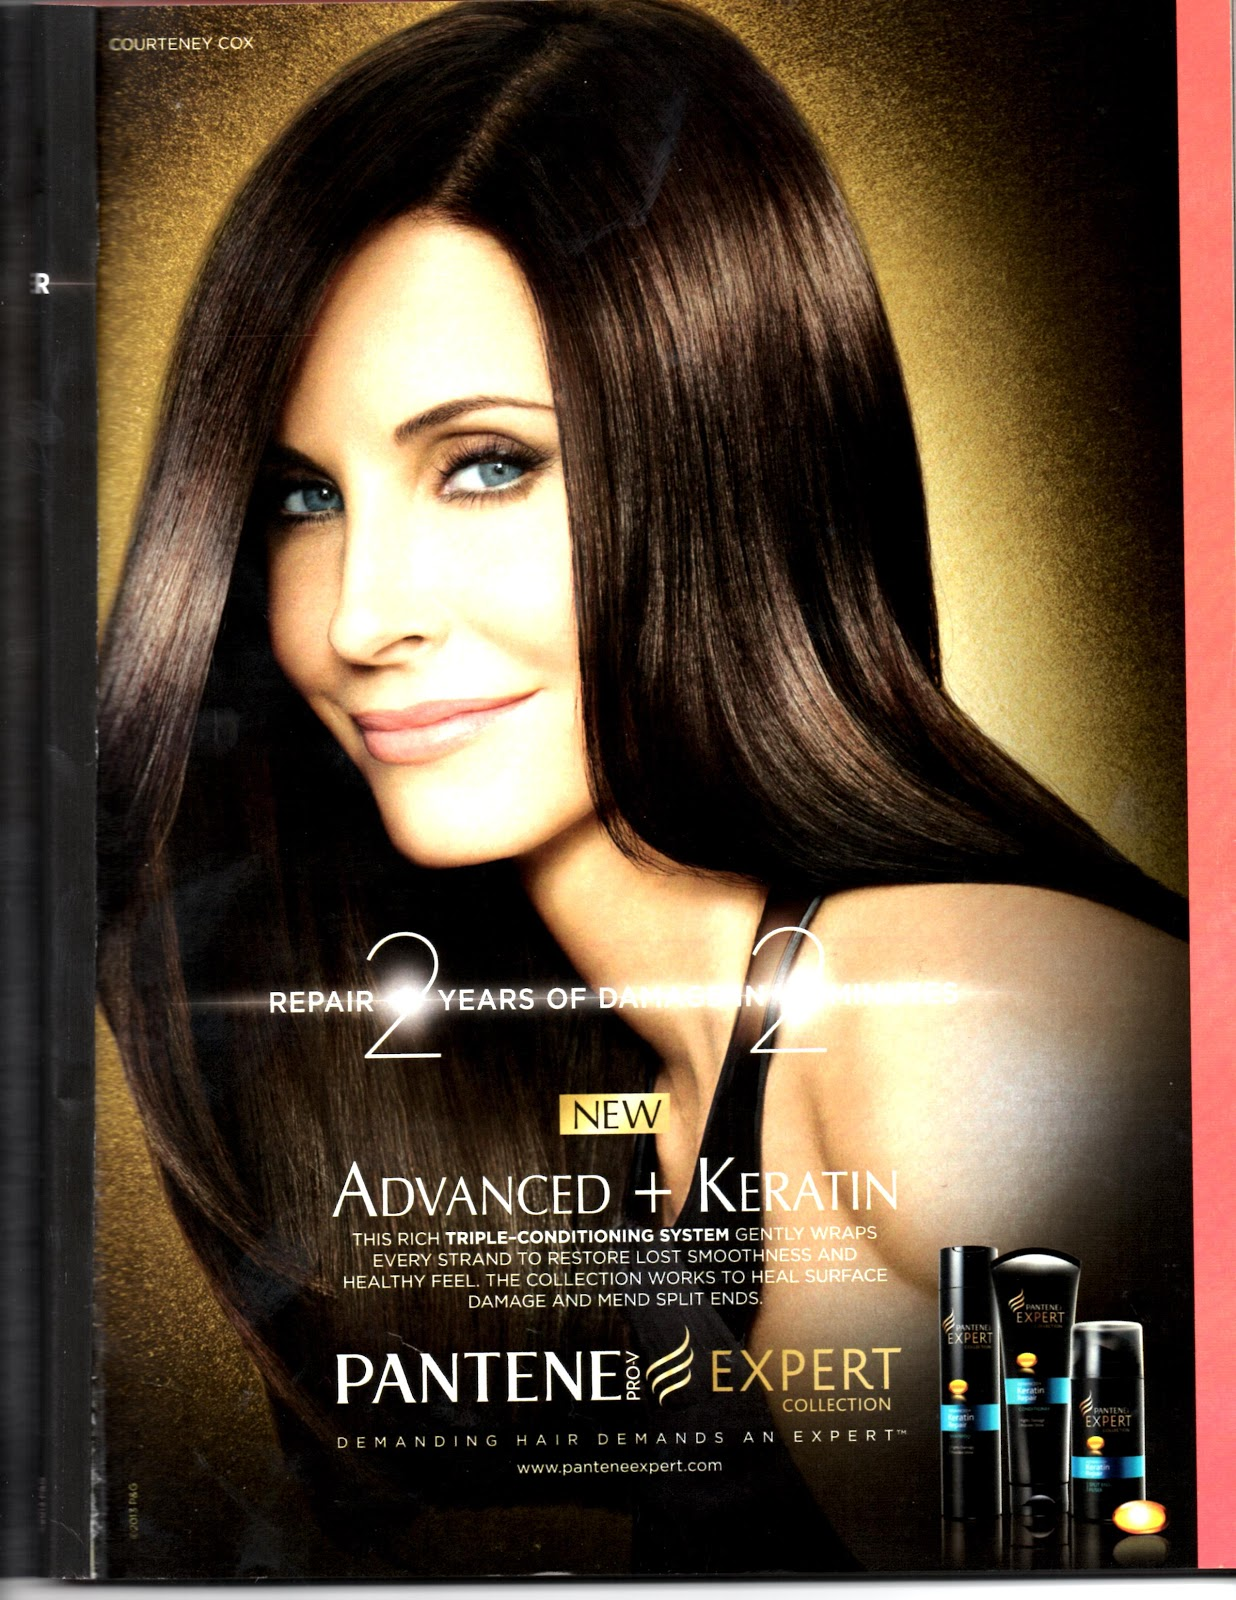 pantene consumer behavior Start studying consumer behavior: buying, having and being final learn vocabulary, terms, and more with flashcards, games, and other study tools.